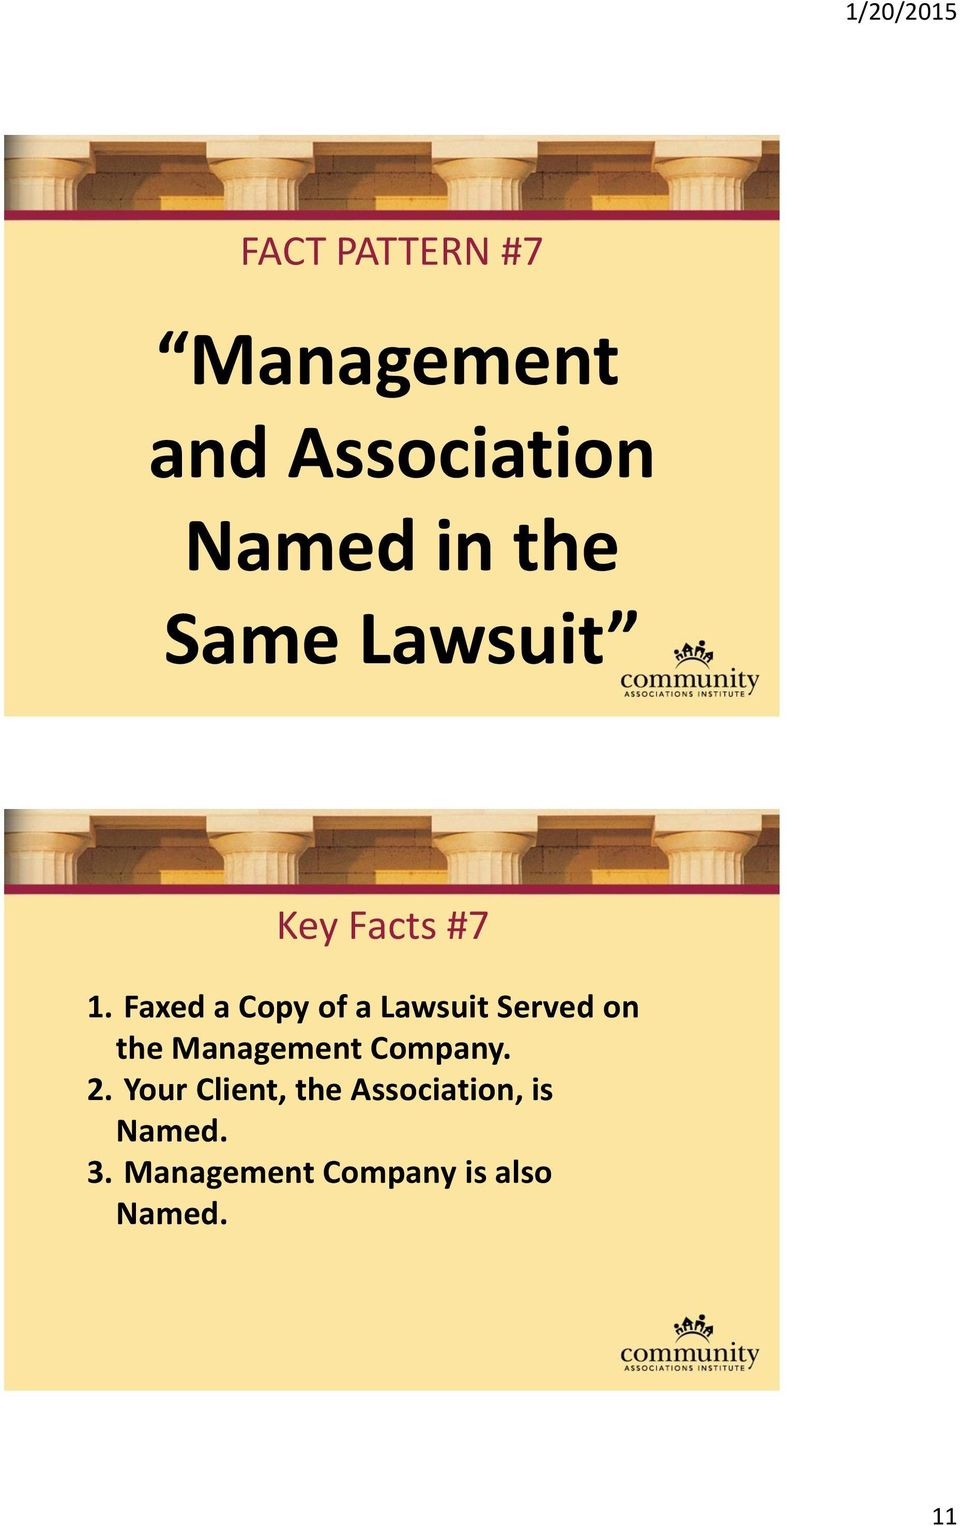 Faxed a Copy of a Lawsuit Served on the Management Company.